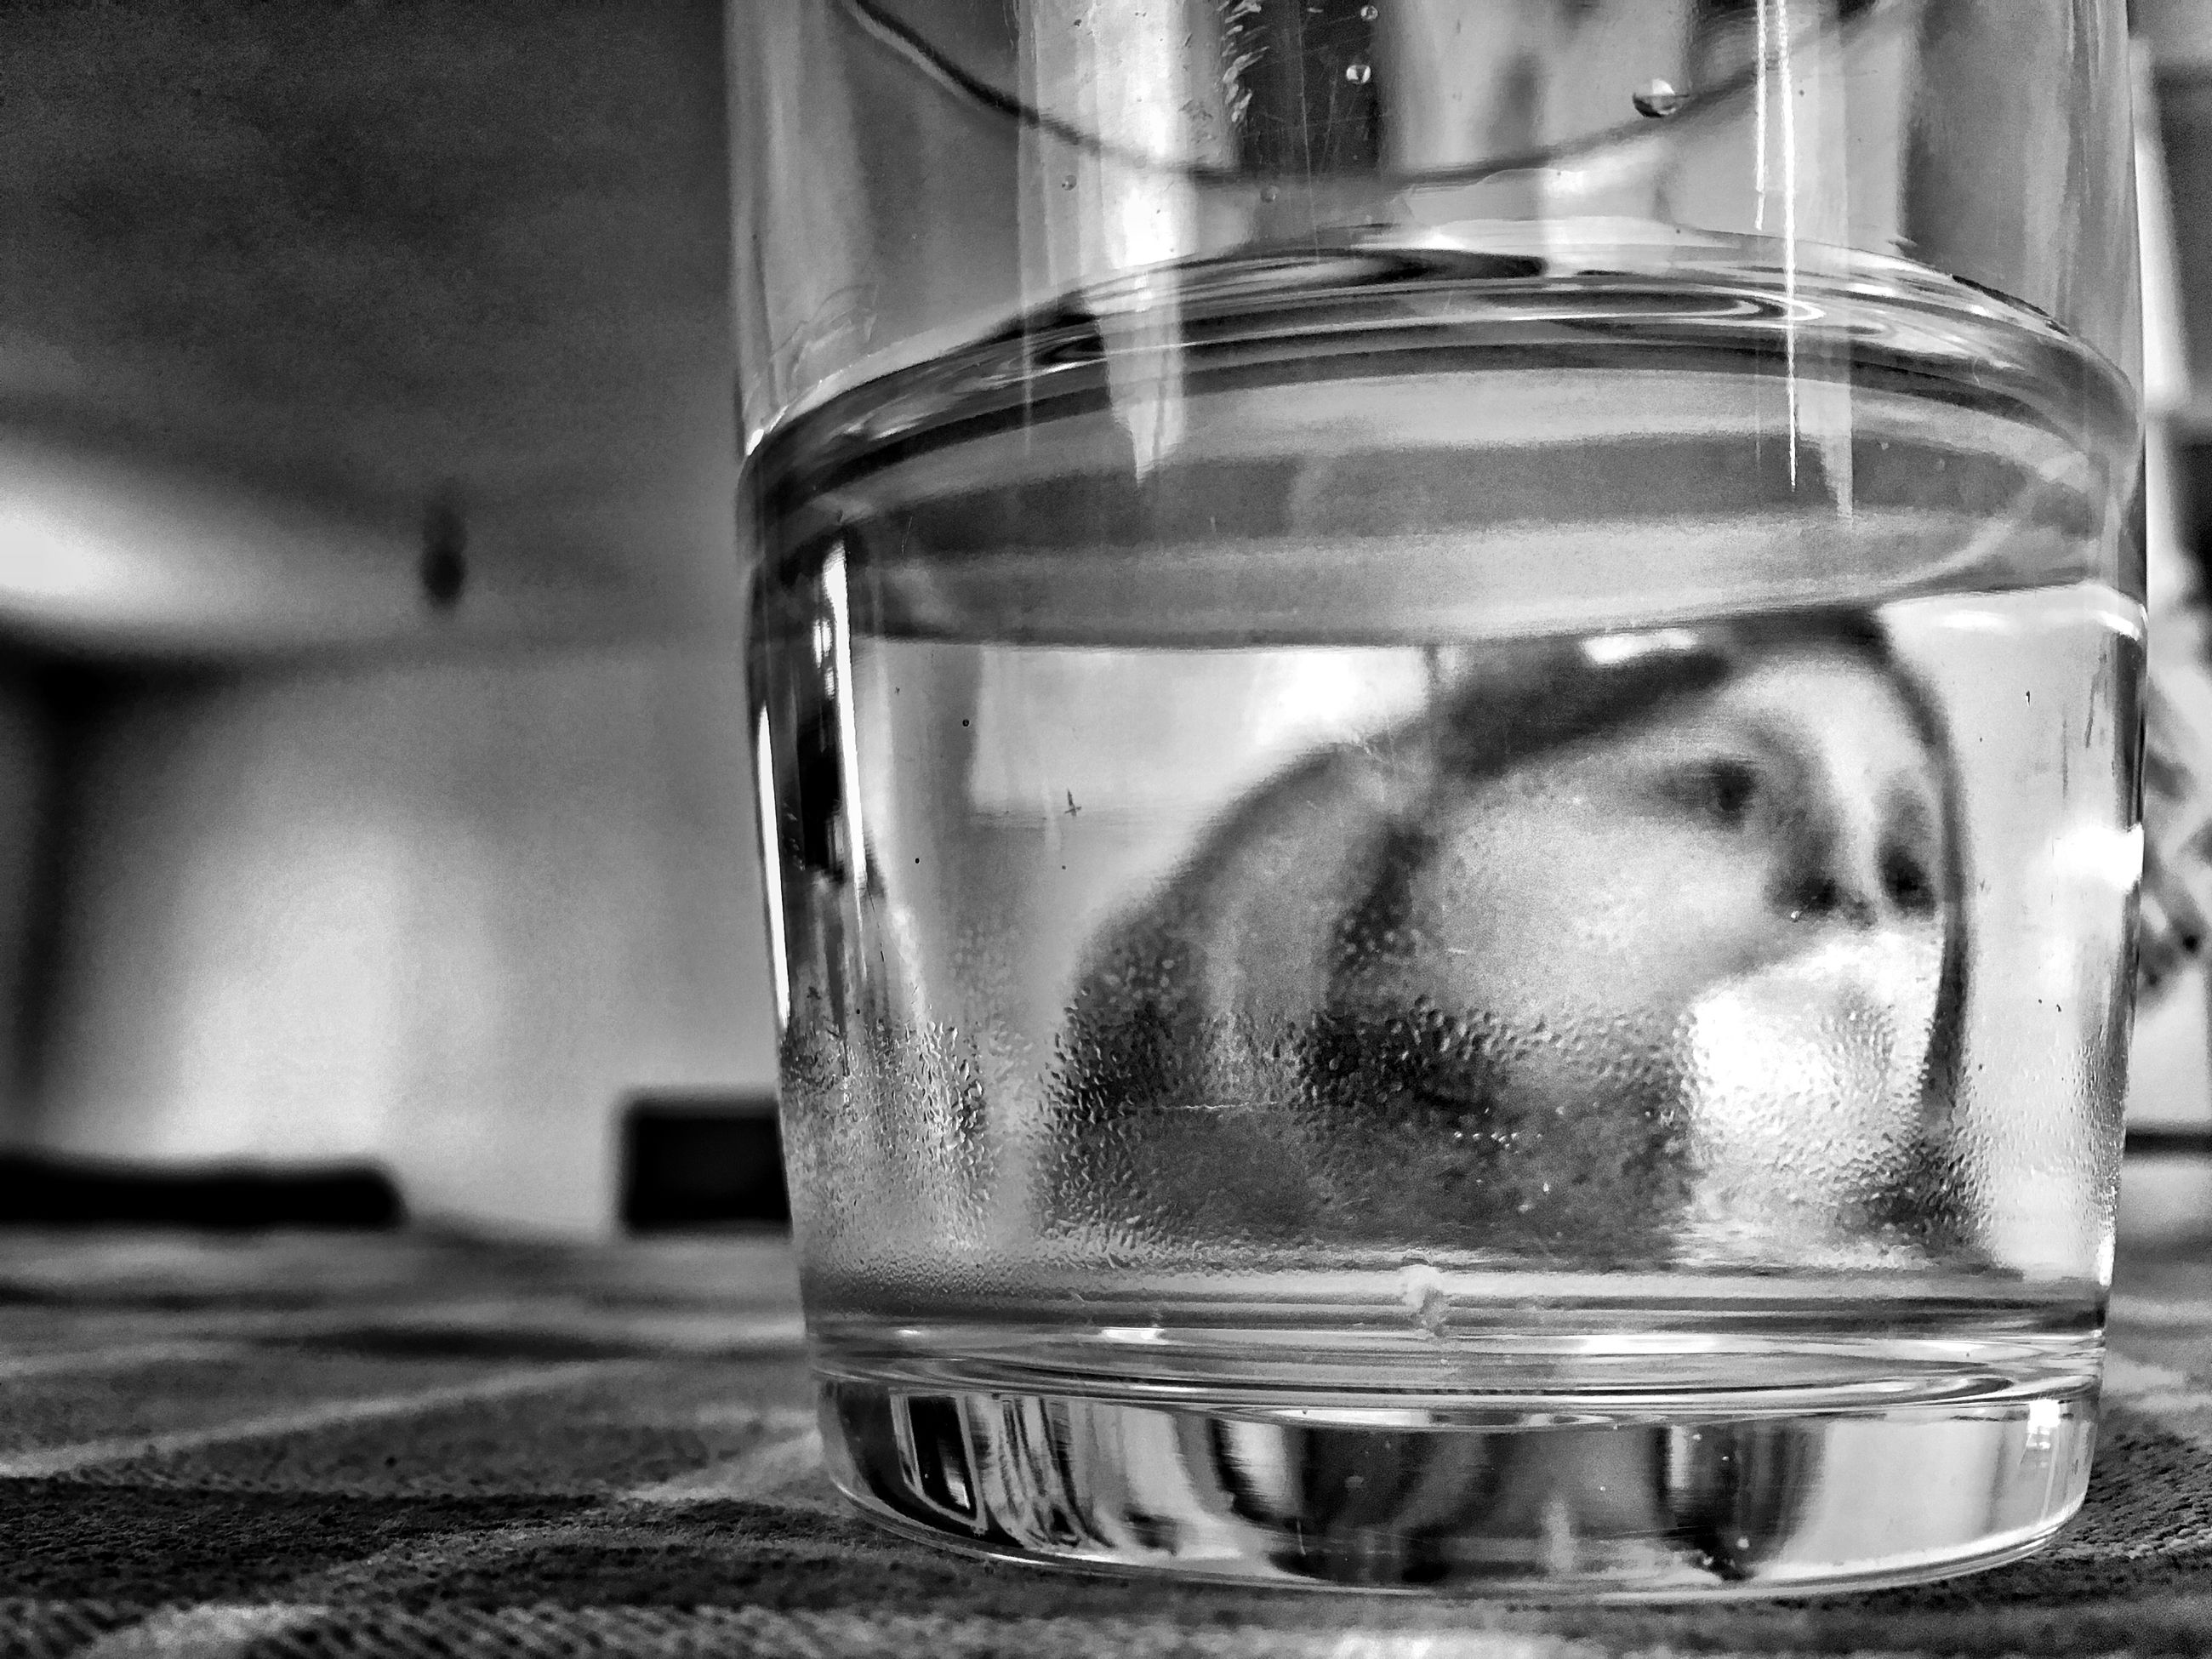 drink, refreshment, glass - material, close-up, drinking glass, transparent, food and drink, focus on foreground, indoors, freshness, glass, alcohol, still life, reflection, ice cube, drop, table, water, wet, liquid